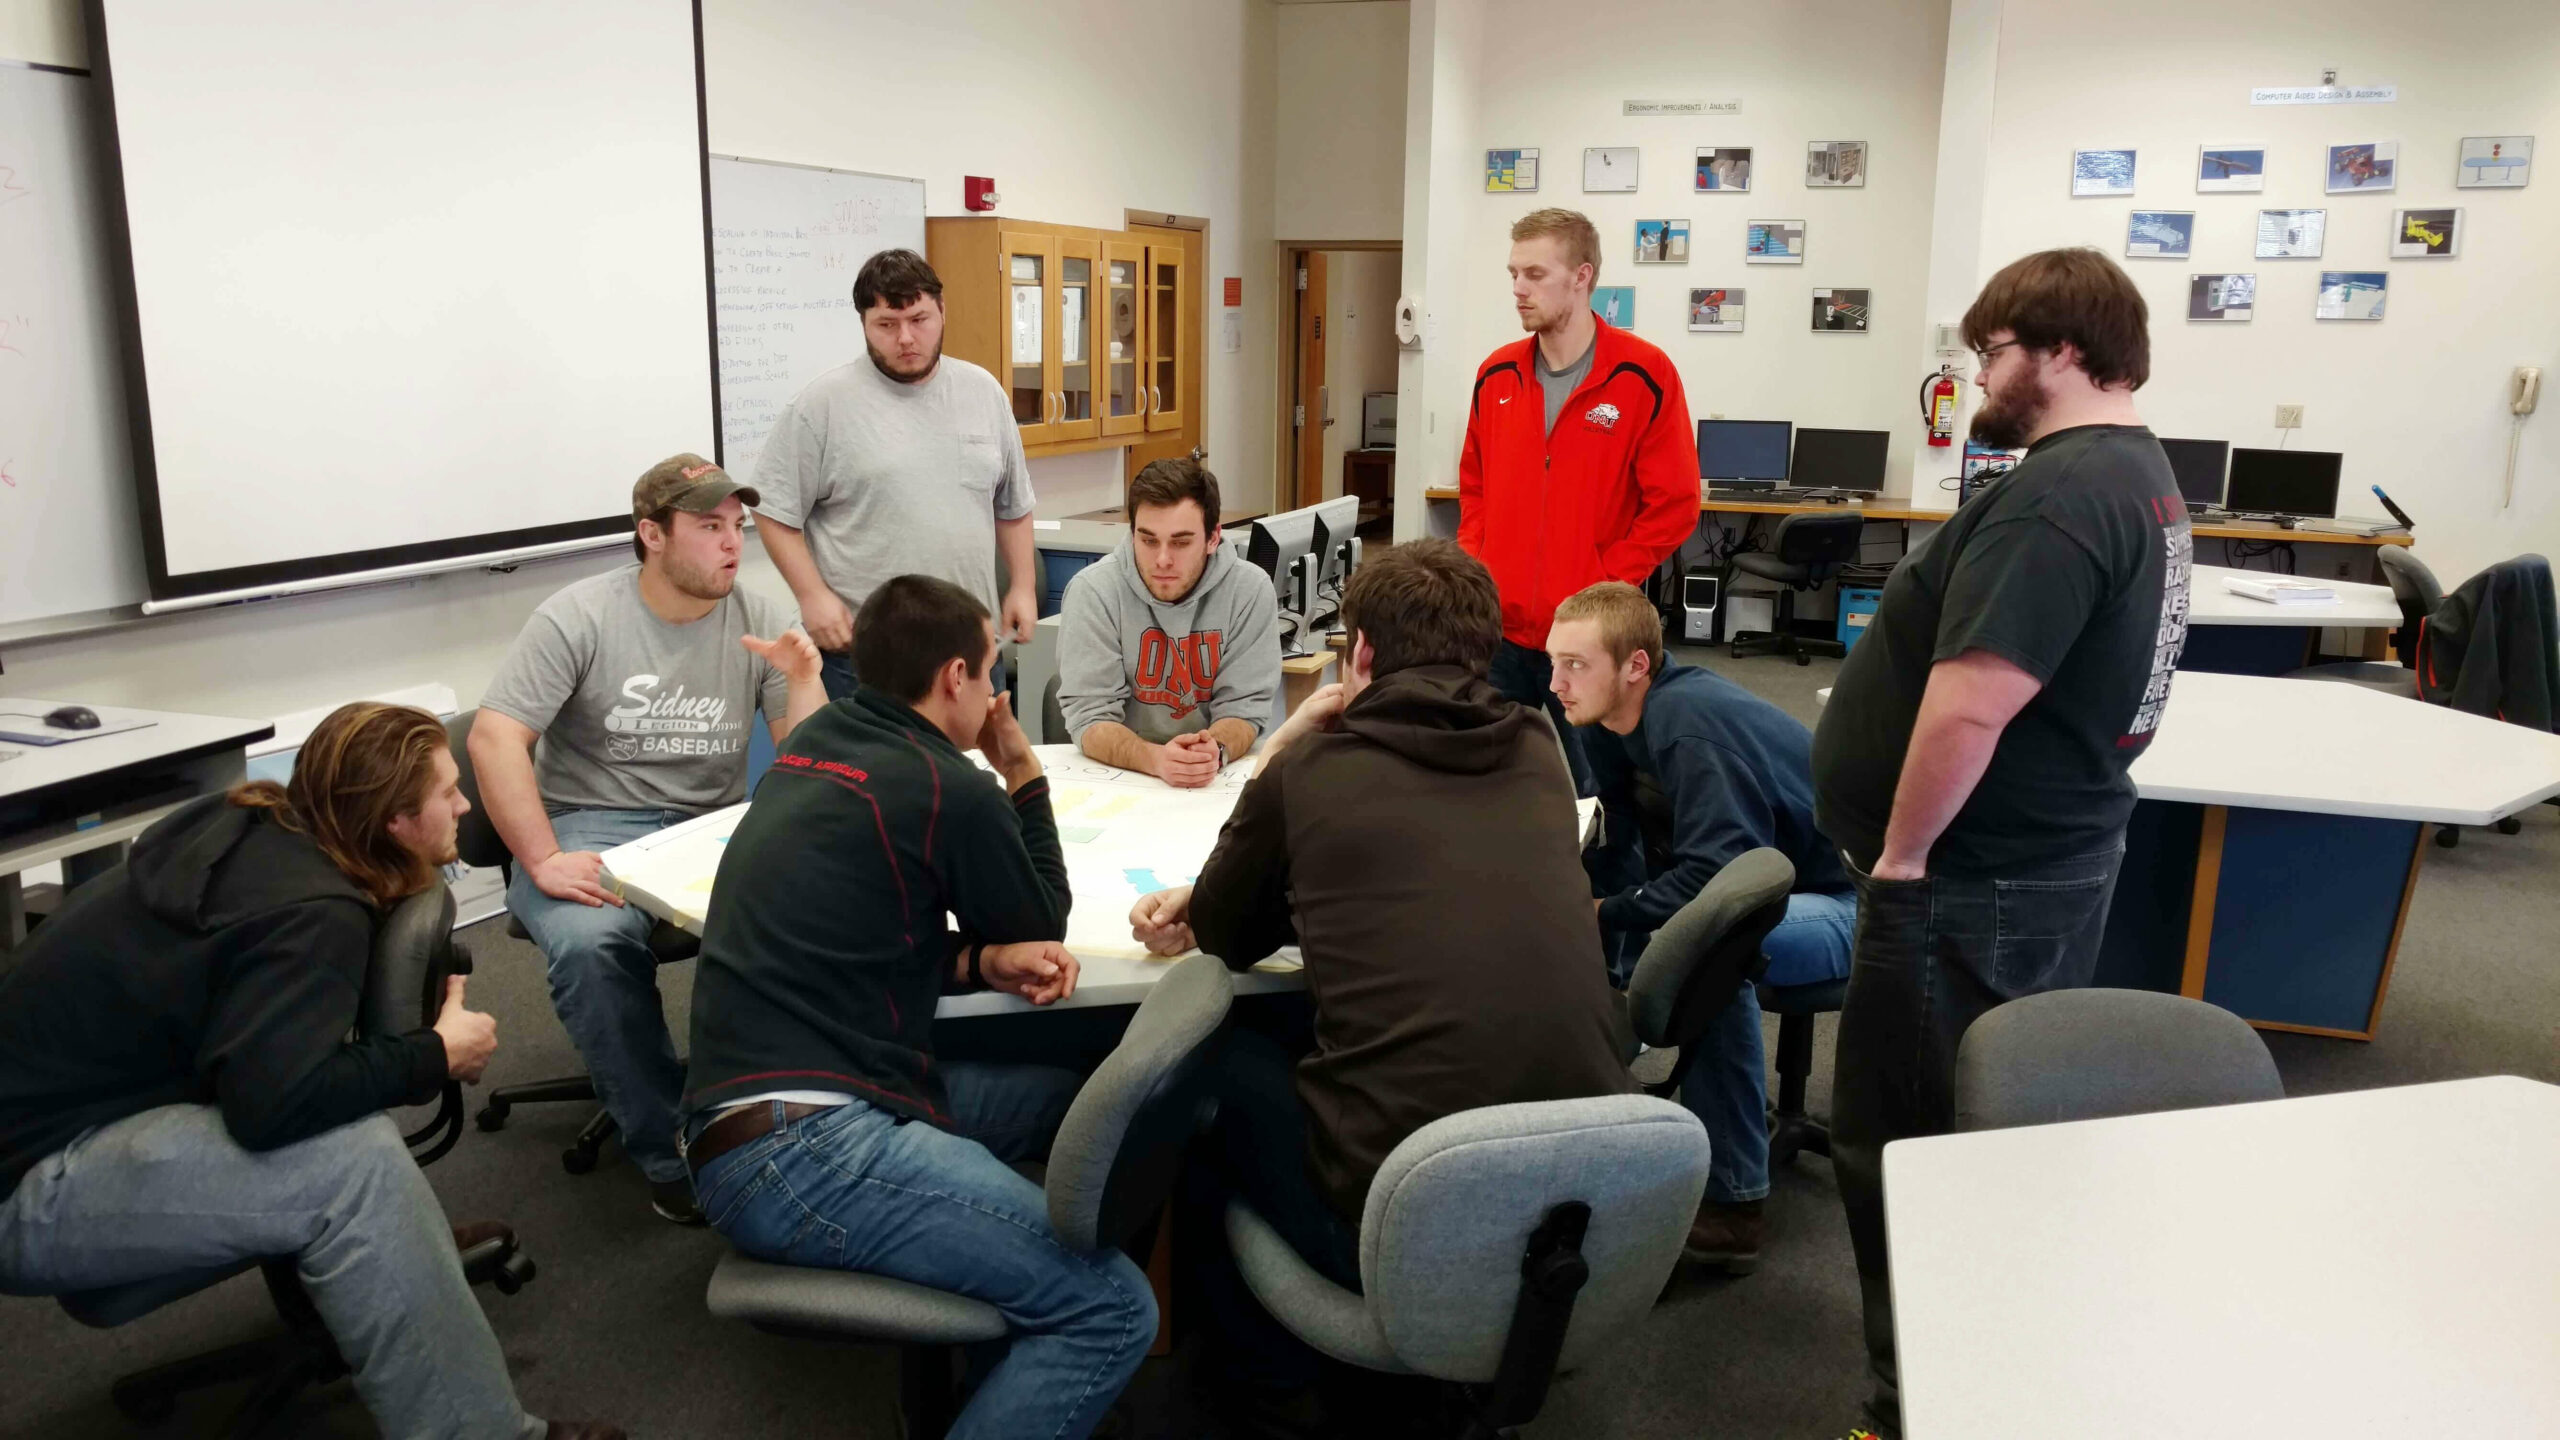 nine Ohio Northern University students working on a factory simulation project